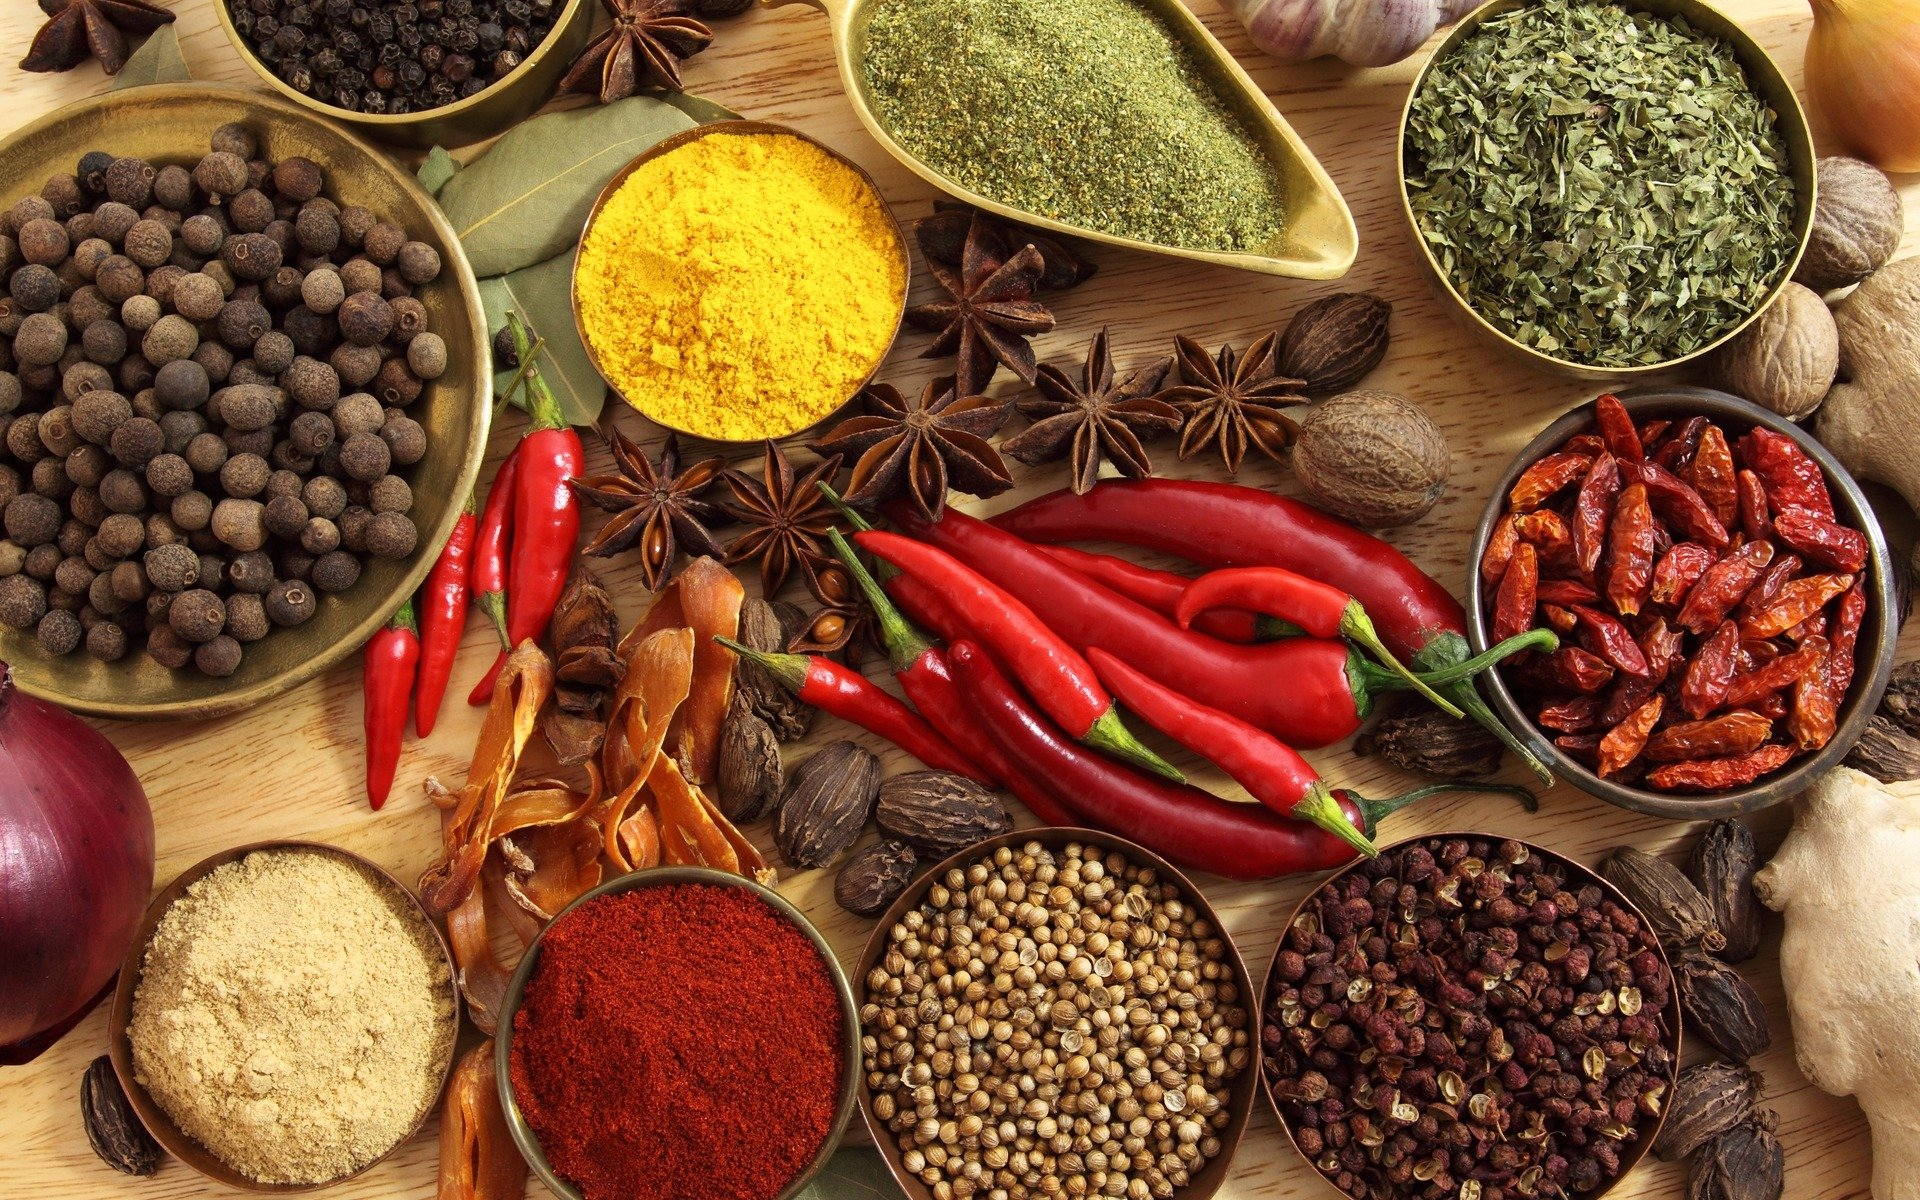 Free Herbs And Spices high quality wallpaper ID:410405 for hd 1920x1200 computer